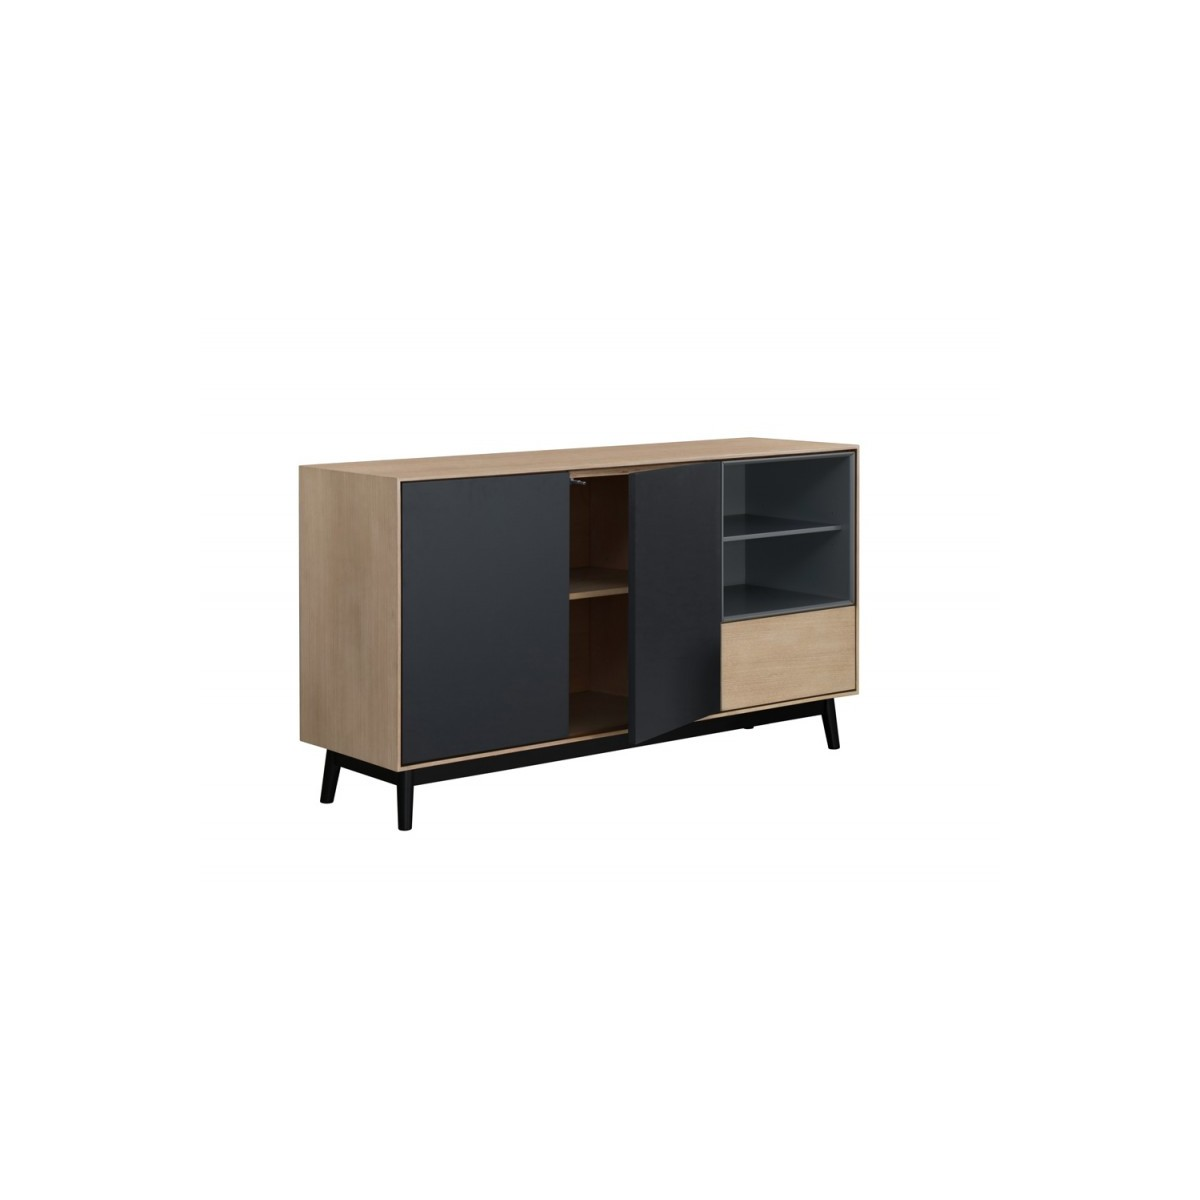 Design Sideboard Buffet 2 Doors 2 Niches 1 Wooden Drawer 150 Cm Light Oak Adamo